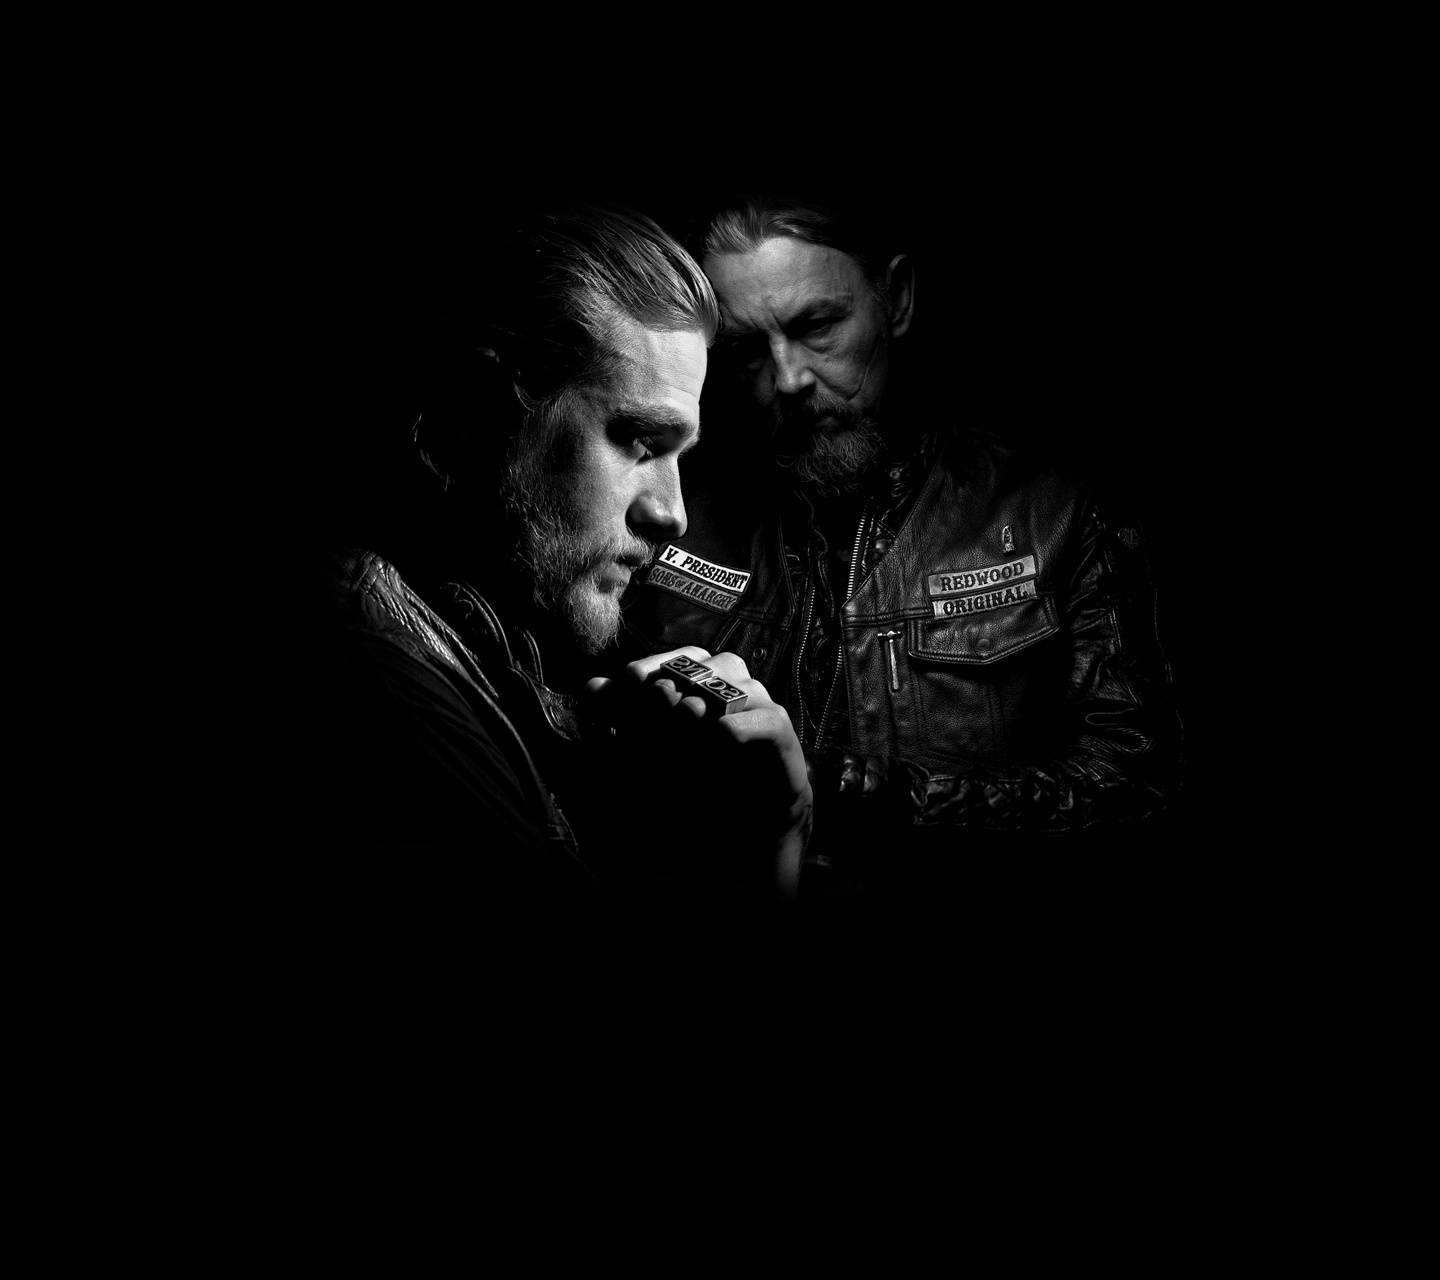 Sons Of Anarchy Wallpaper By Impala Babe 2a Free On Zedge